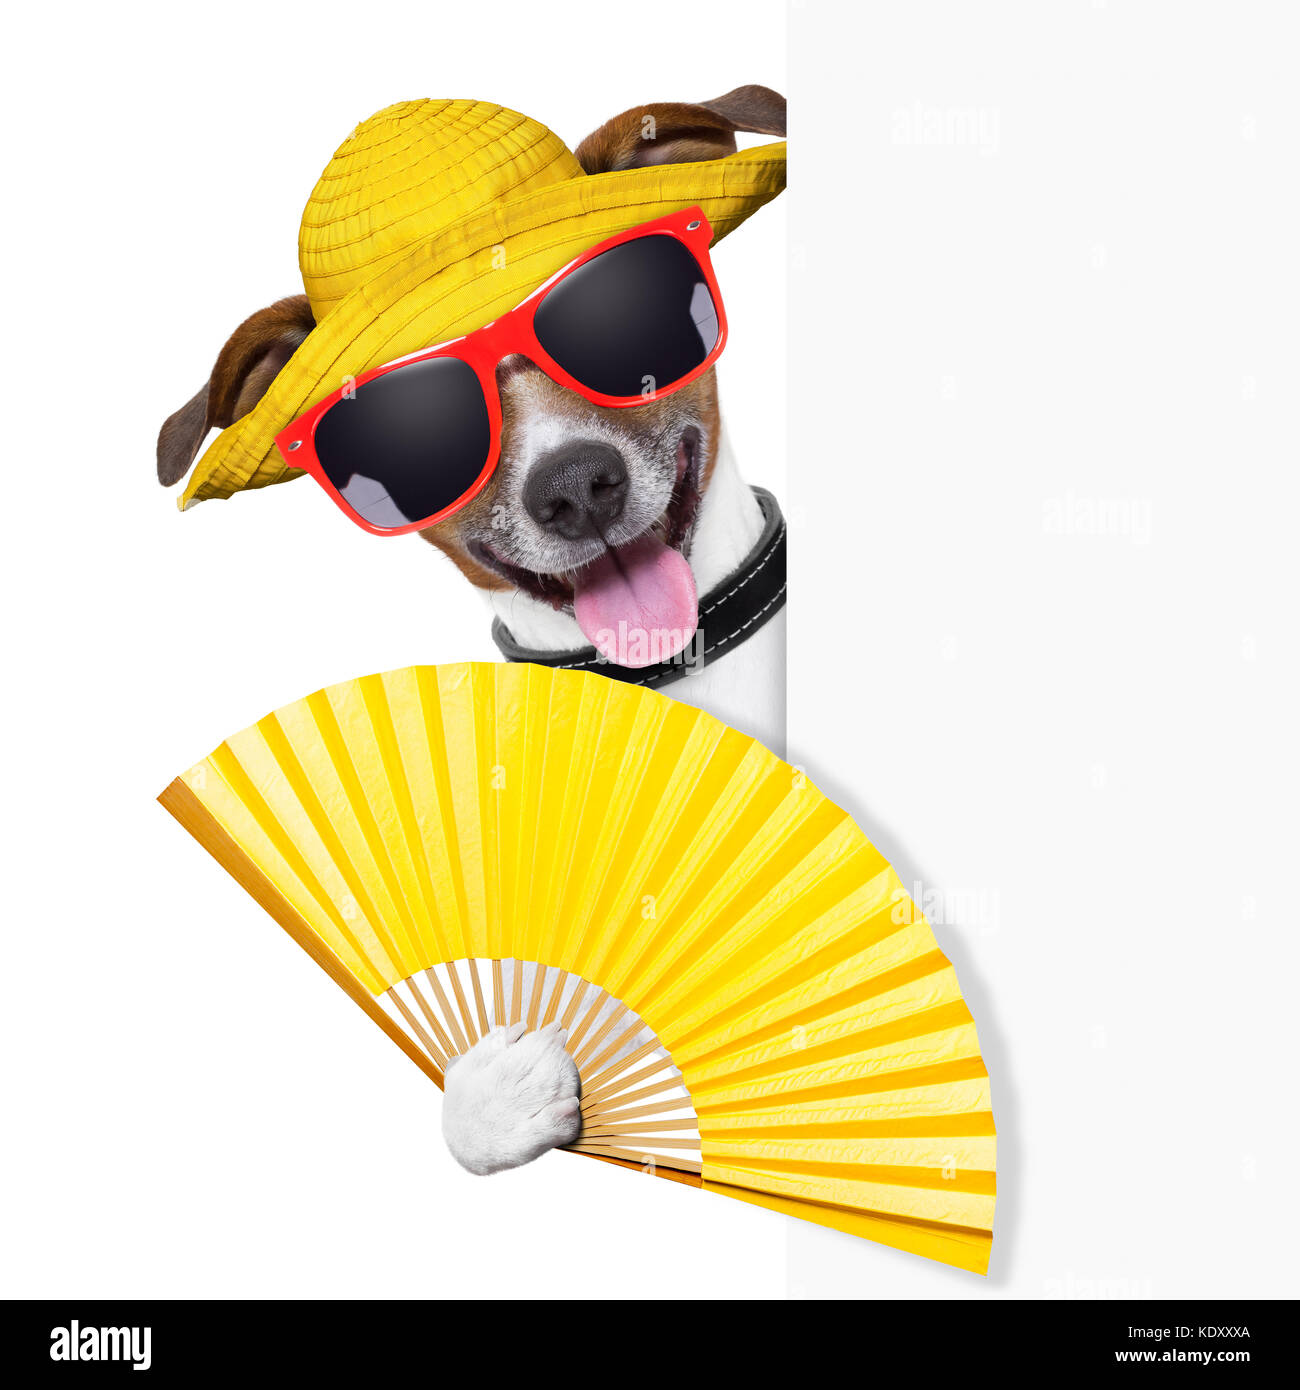 summer cocktail dog cooling of with hand fan behind banner - Stock Image